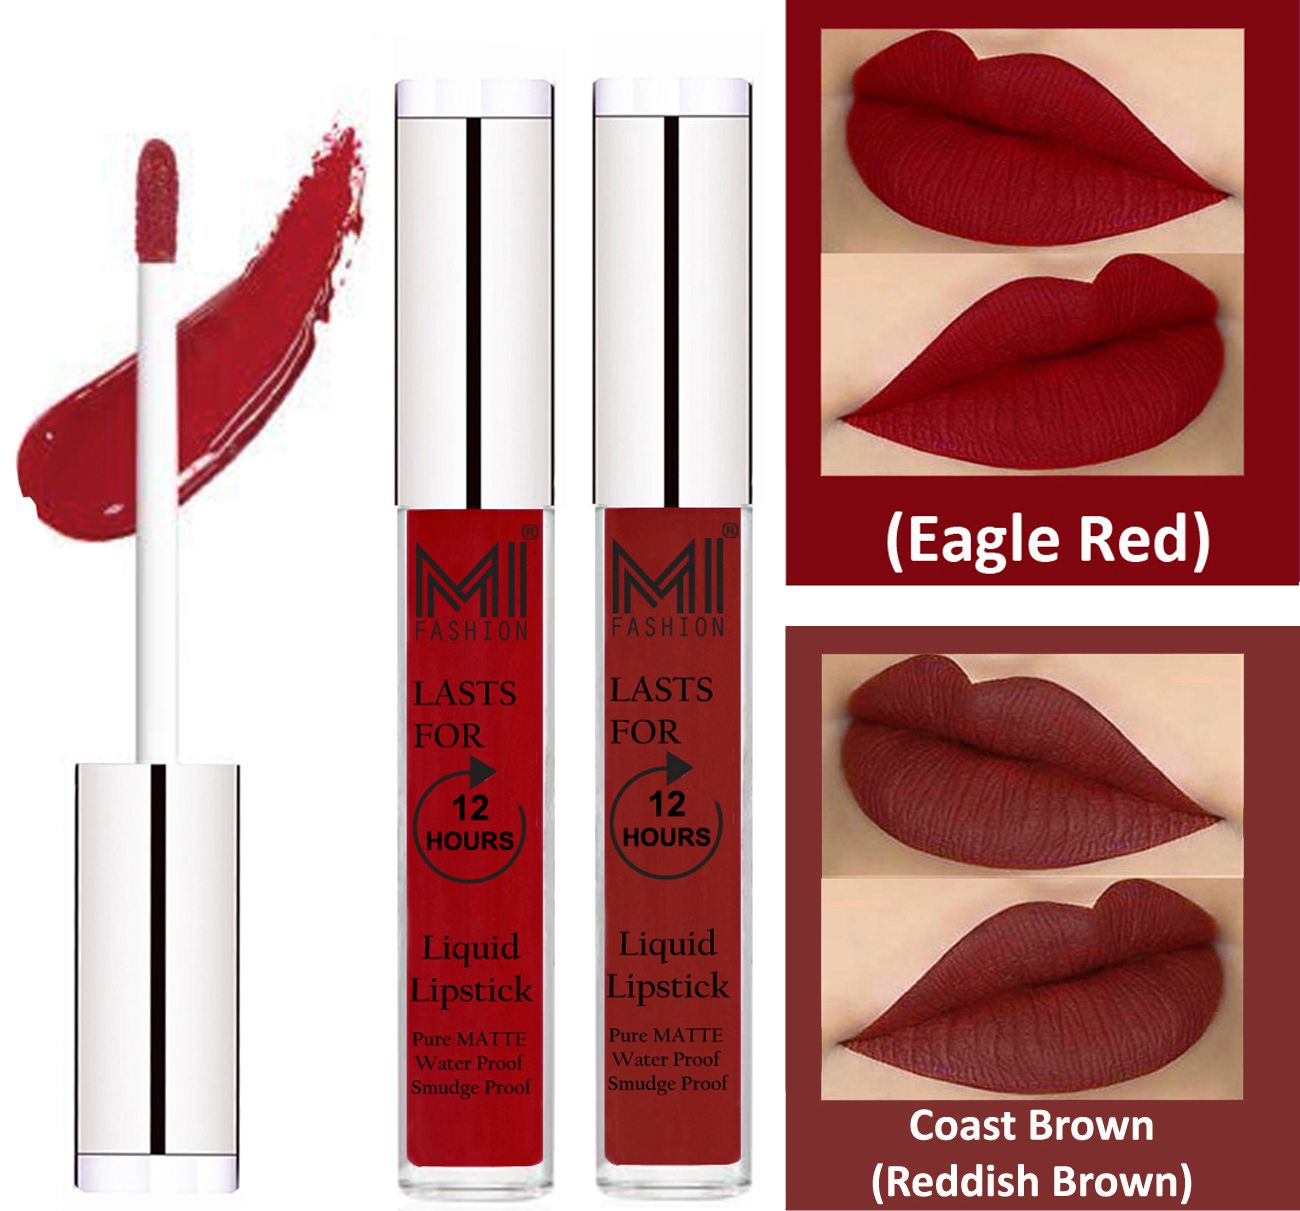 MI FASHION Liquid Lipstick Eagle Red,Coast Brown 3 ml Pack of 2